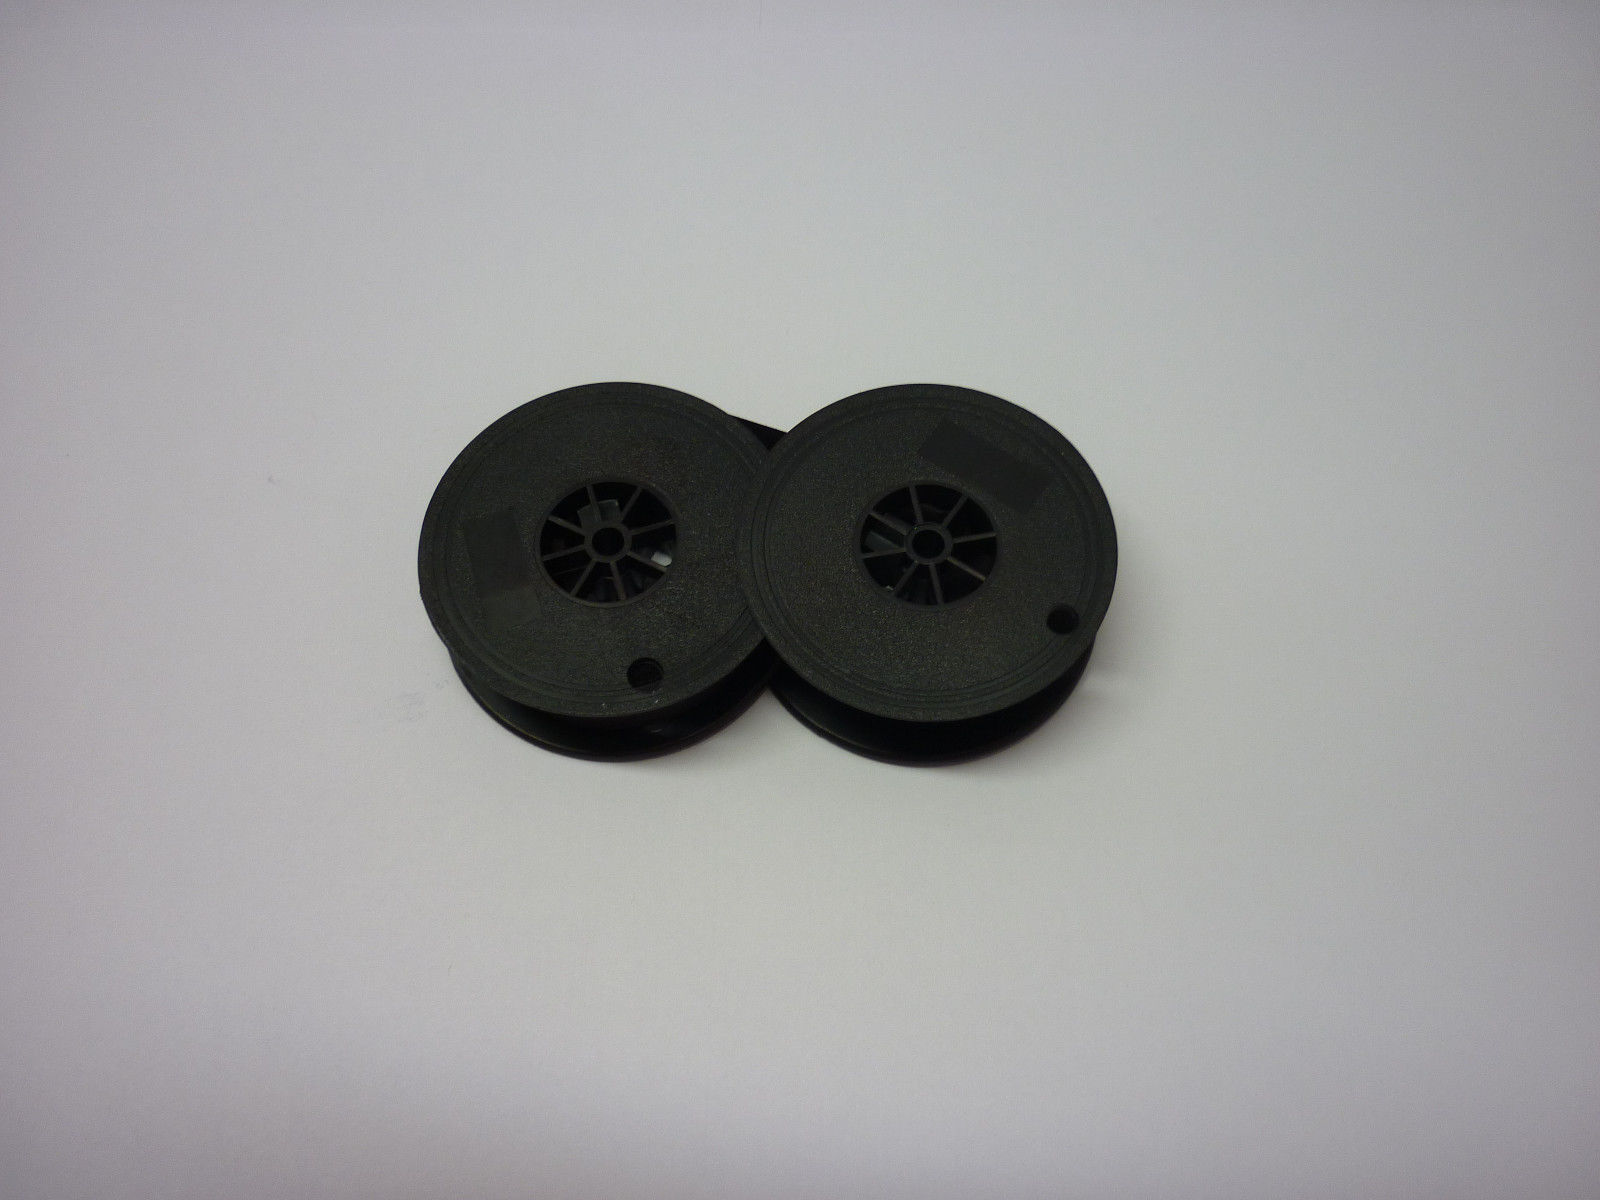 Singer T4 Scholastic T-4 Typewriter Ribbon Black Twin Spool